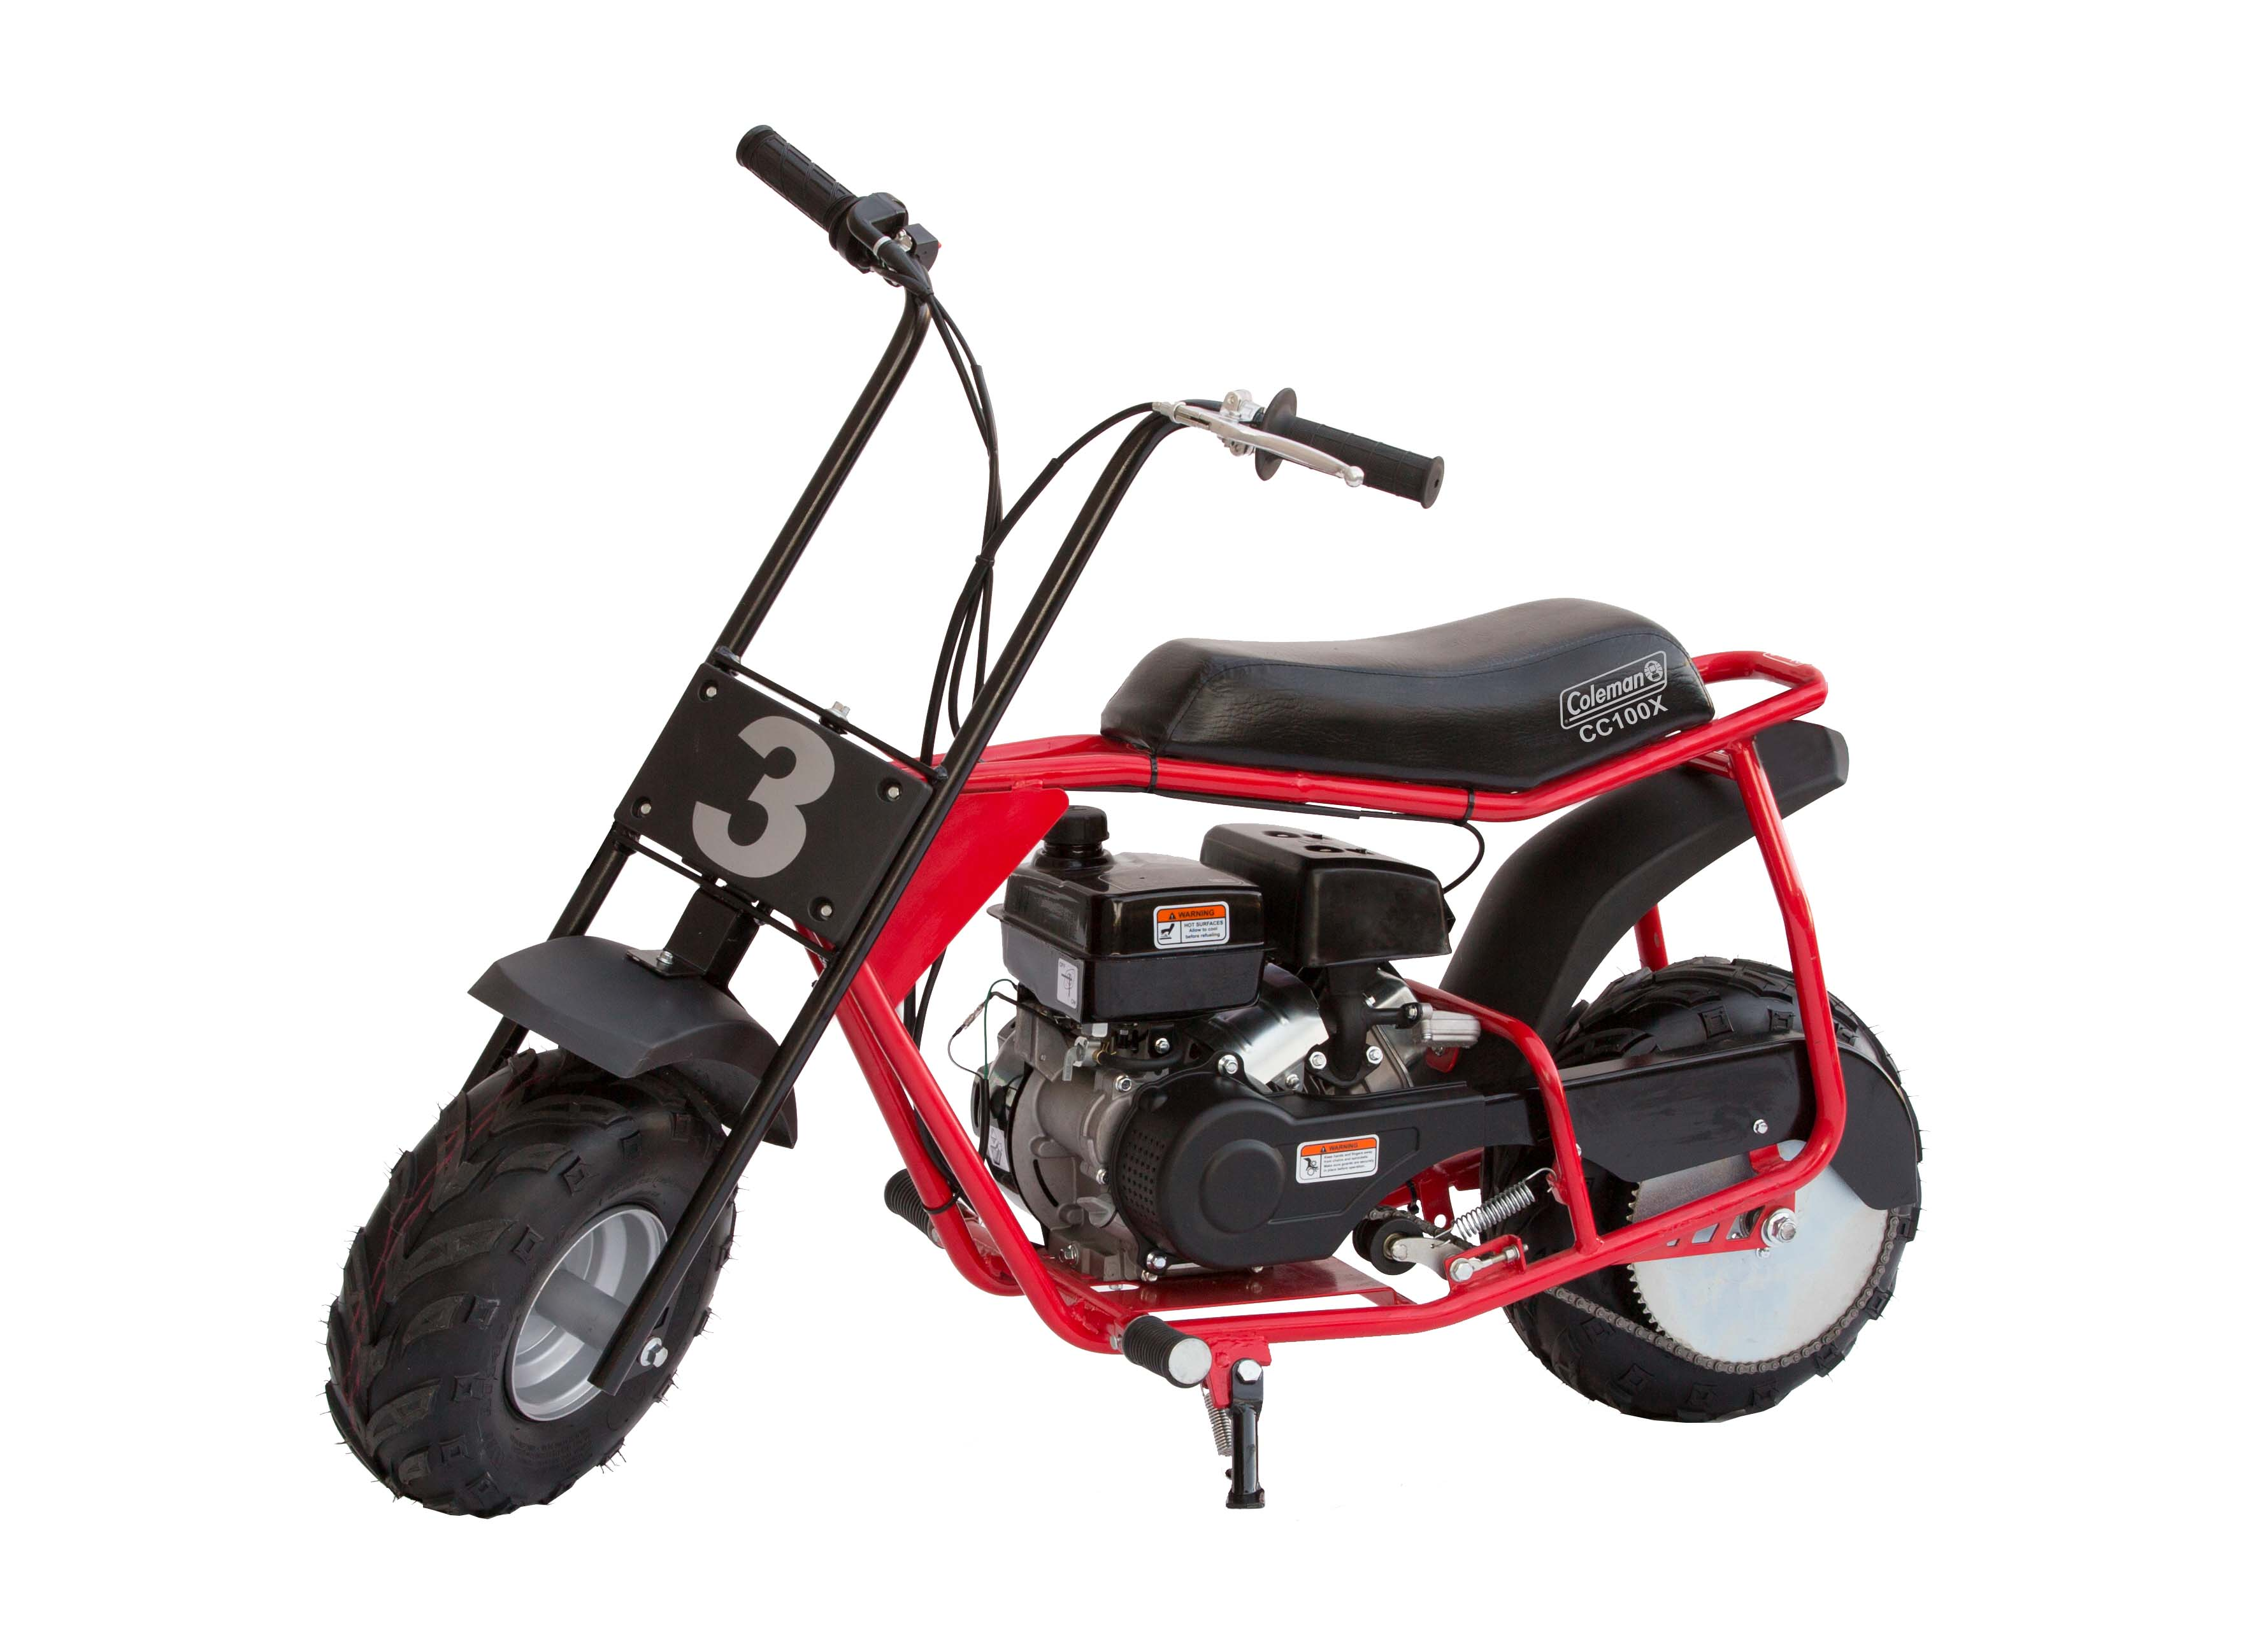 A new and improved mini bike for the little guys. We kept the same, trusted CT100U engine, but modified the frame for superior comfort and increased affordability.